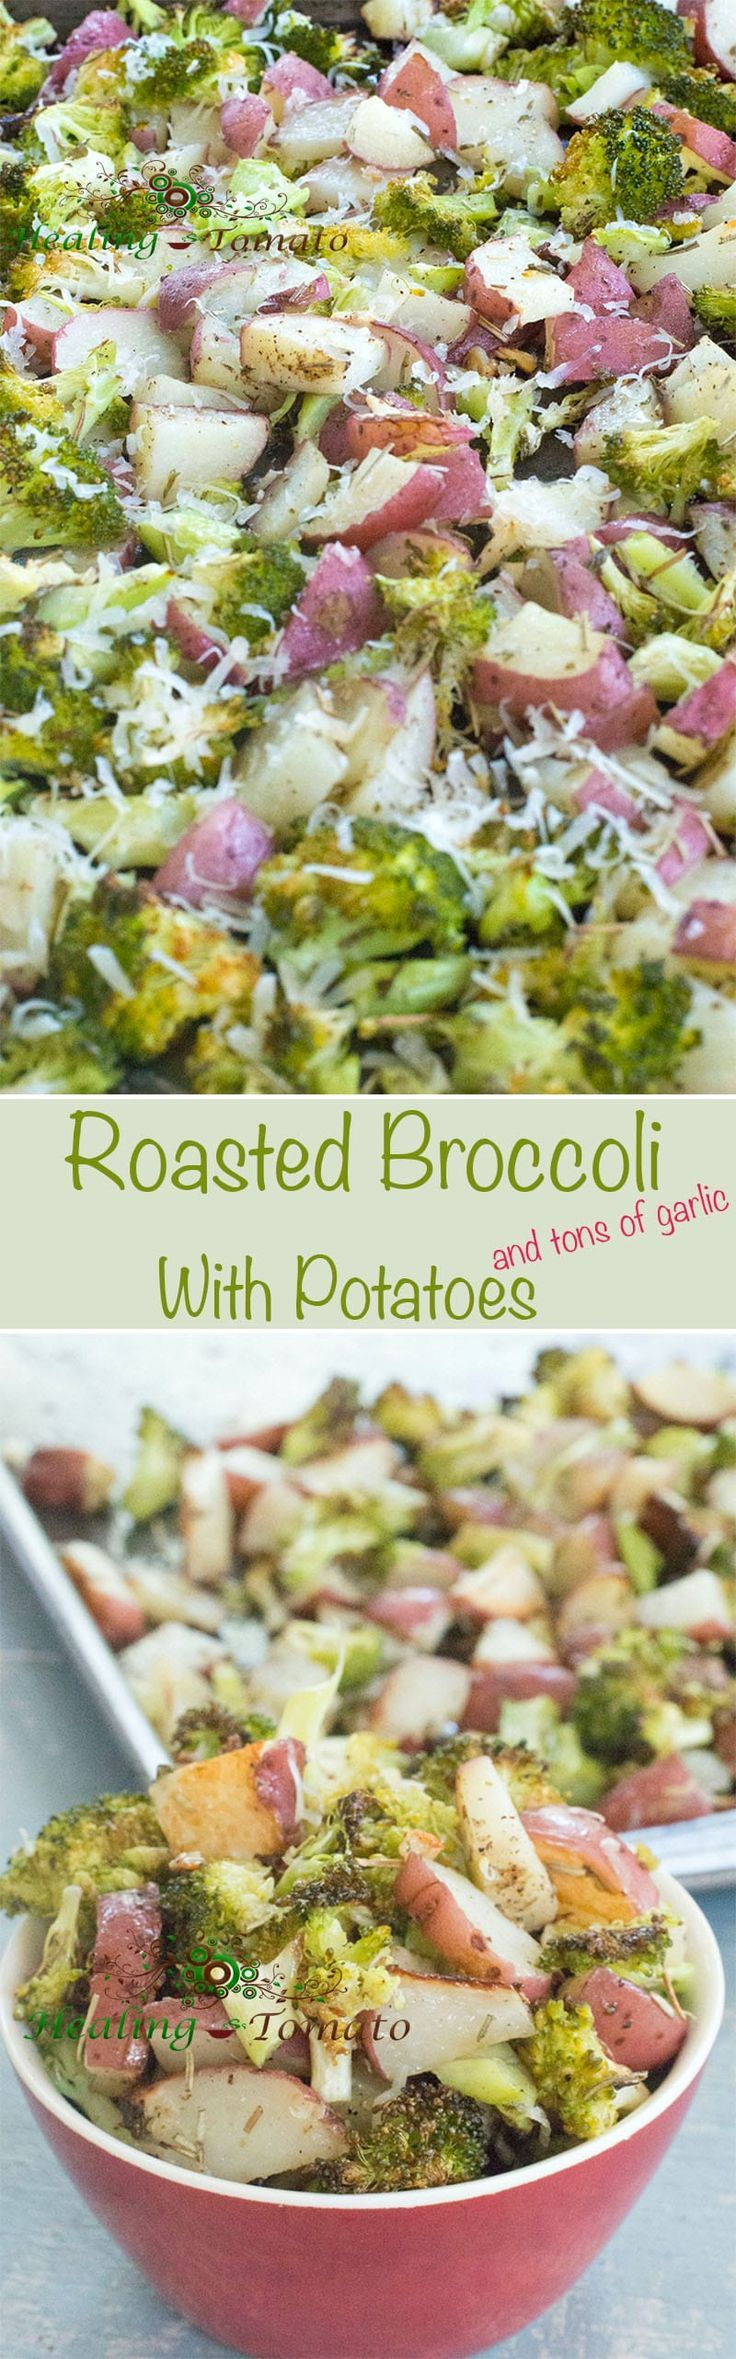 Sheet Pan Roasted Broccoli and Potatoes are a very simple combo of healthy comfort food. Seasoned to perfection with garlic, oregano, parsley, thyme and pepper, this is destined to become a favorite side dish at your dinner table.